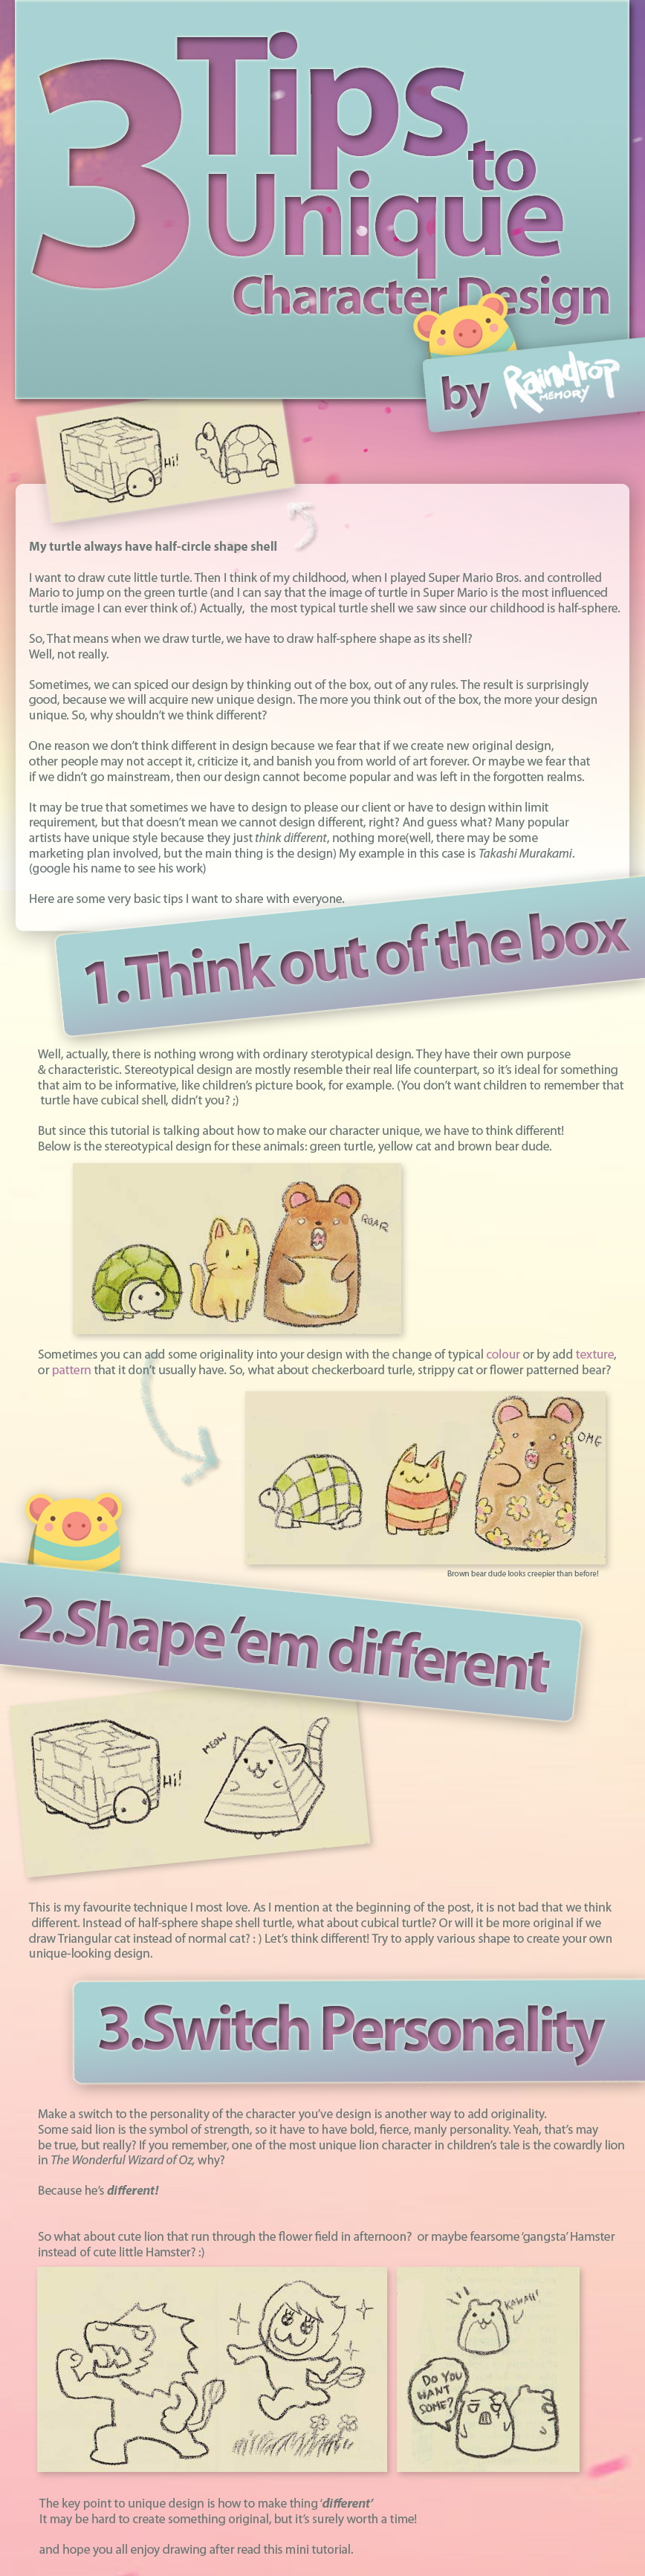 10 Character Design Tips : Tips to character design by raindropmemory on deviantart